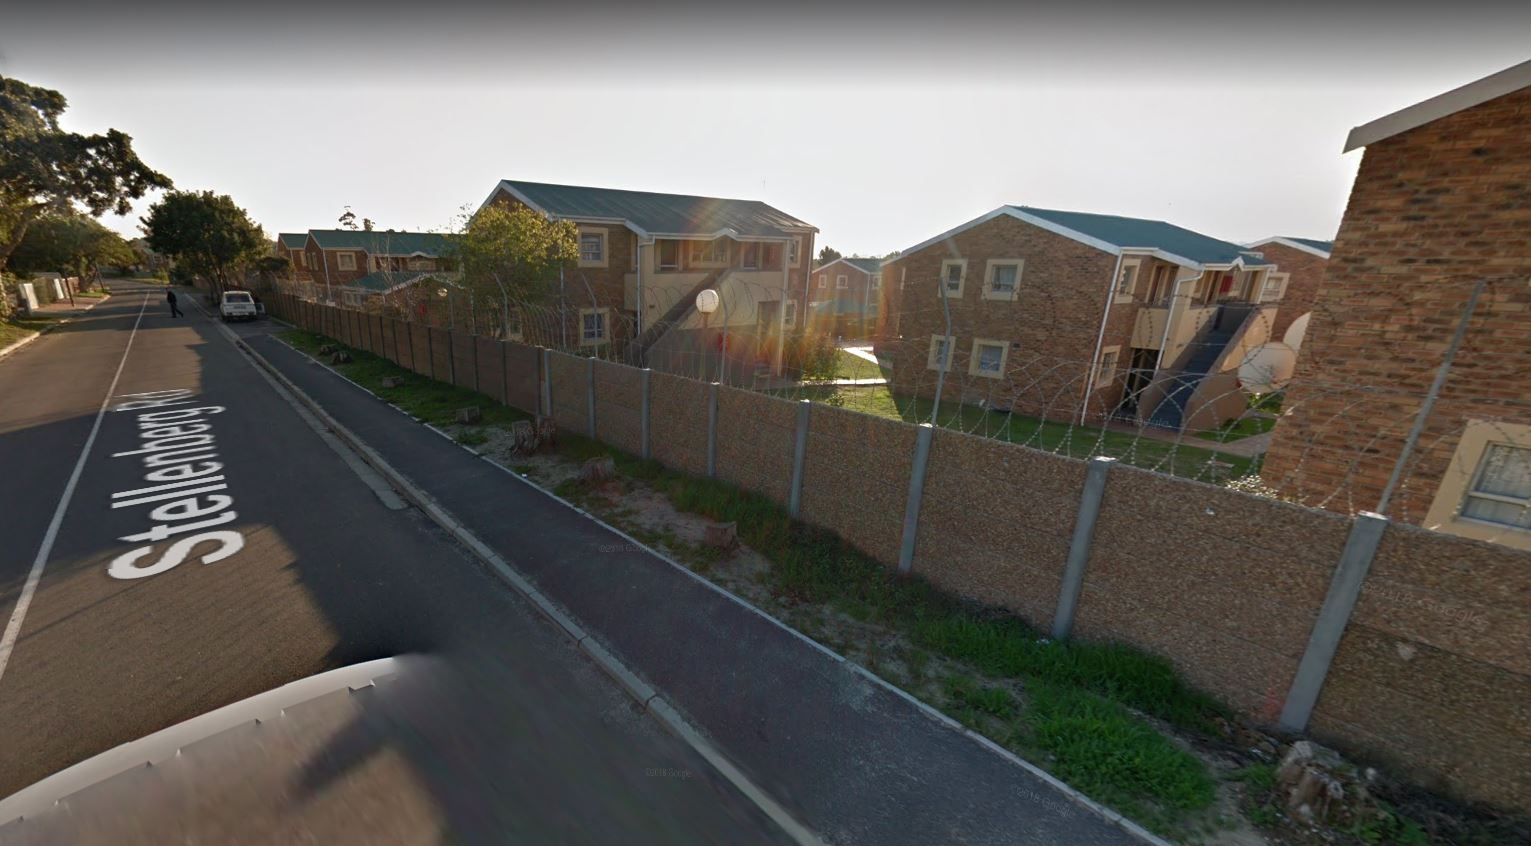 Street view of apartments